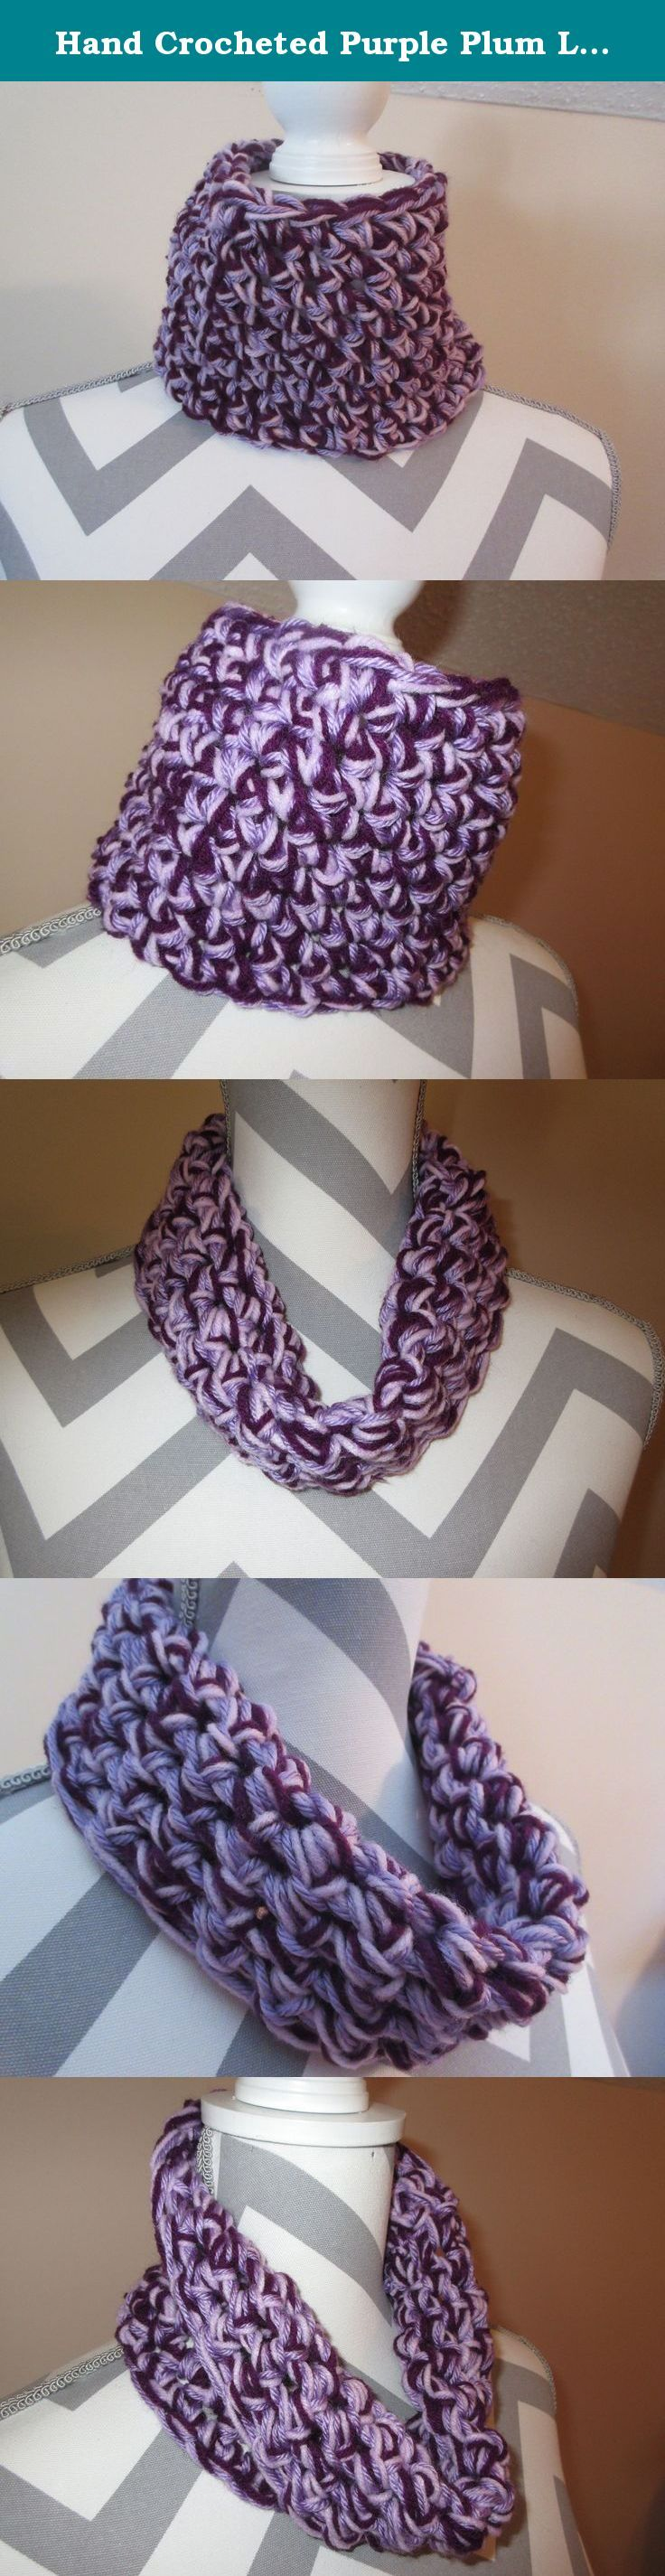 Hand Crocheted Purple Plum Lilac Lavender Chunky Cowl Scarf Tunnel Neck Warmer Design by Ladies Fashion Infinity Fall Winter OSFA Handmade Gift for Her Gift Bag and Ribbon Included. Handmade Super Soft Plum Purple, Lilac and Lavender Shades Tunnel Cowl Neck Warmer Scarf Hand Crocheted Cowl Infinity Design 20 inches circumference (hand crocheted together in one loop 5 1/2 inches tall can be worn as a neck warmer or turned down as a very soft warm scarf). Super soft luxe acrylic yarn…